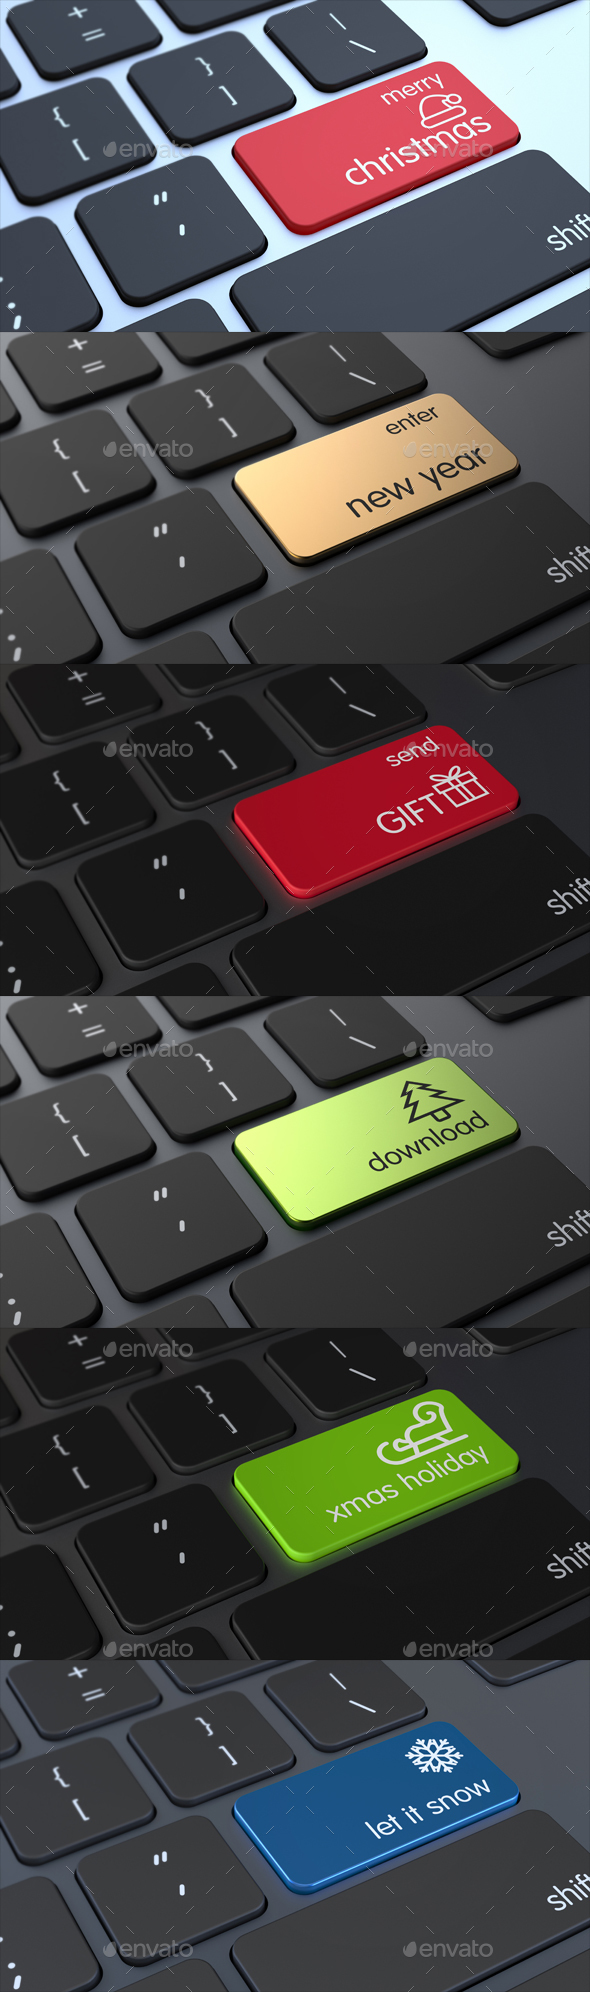 Keyboard with Christmas Keys 3D Concept - Technology 3D Renders